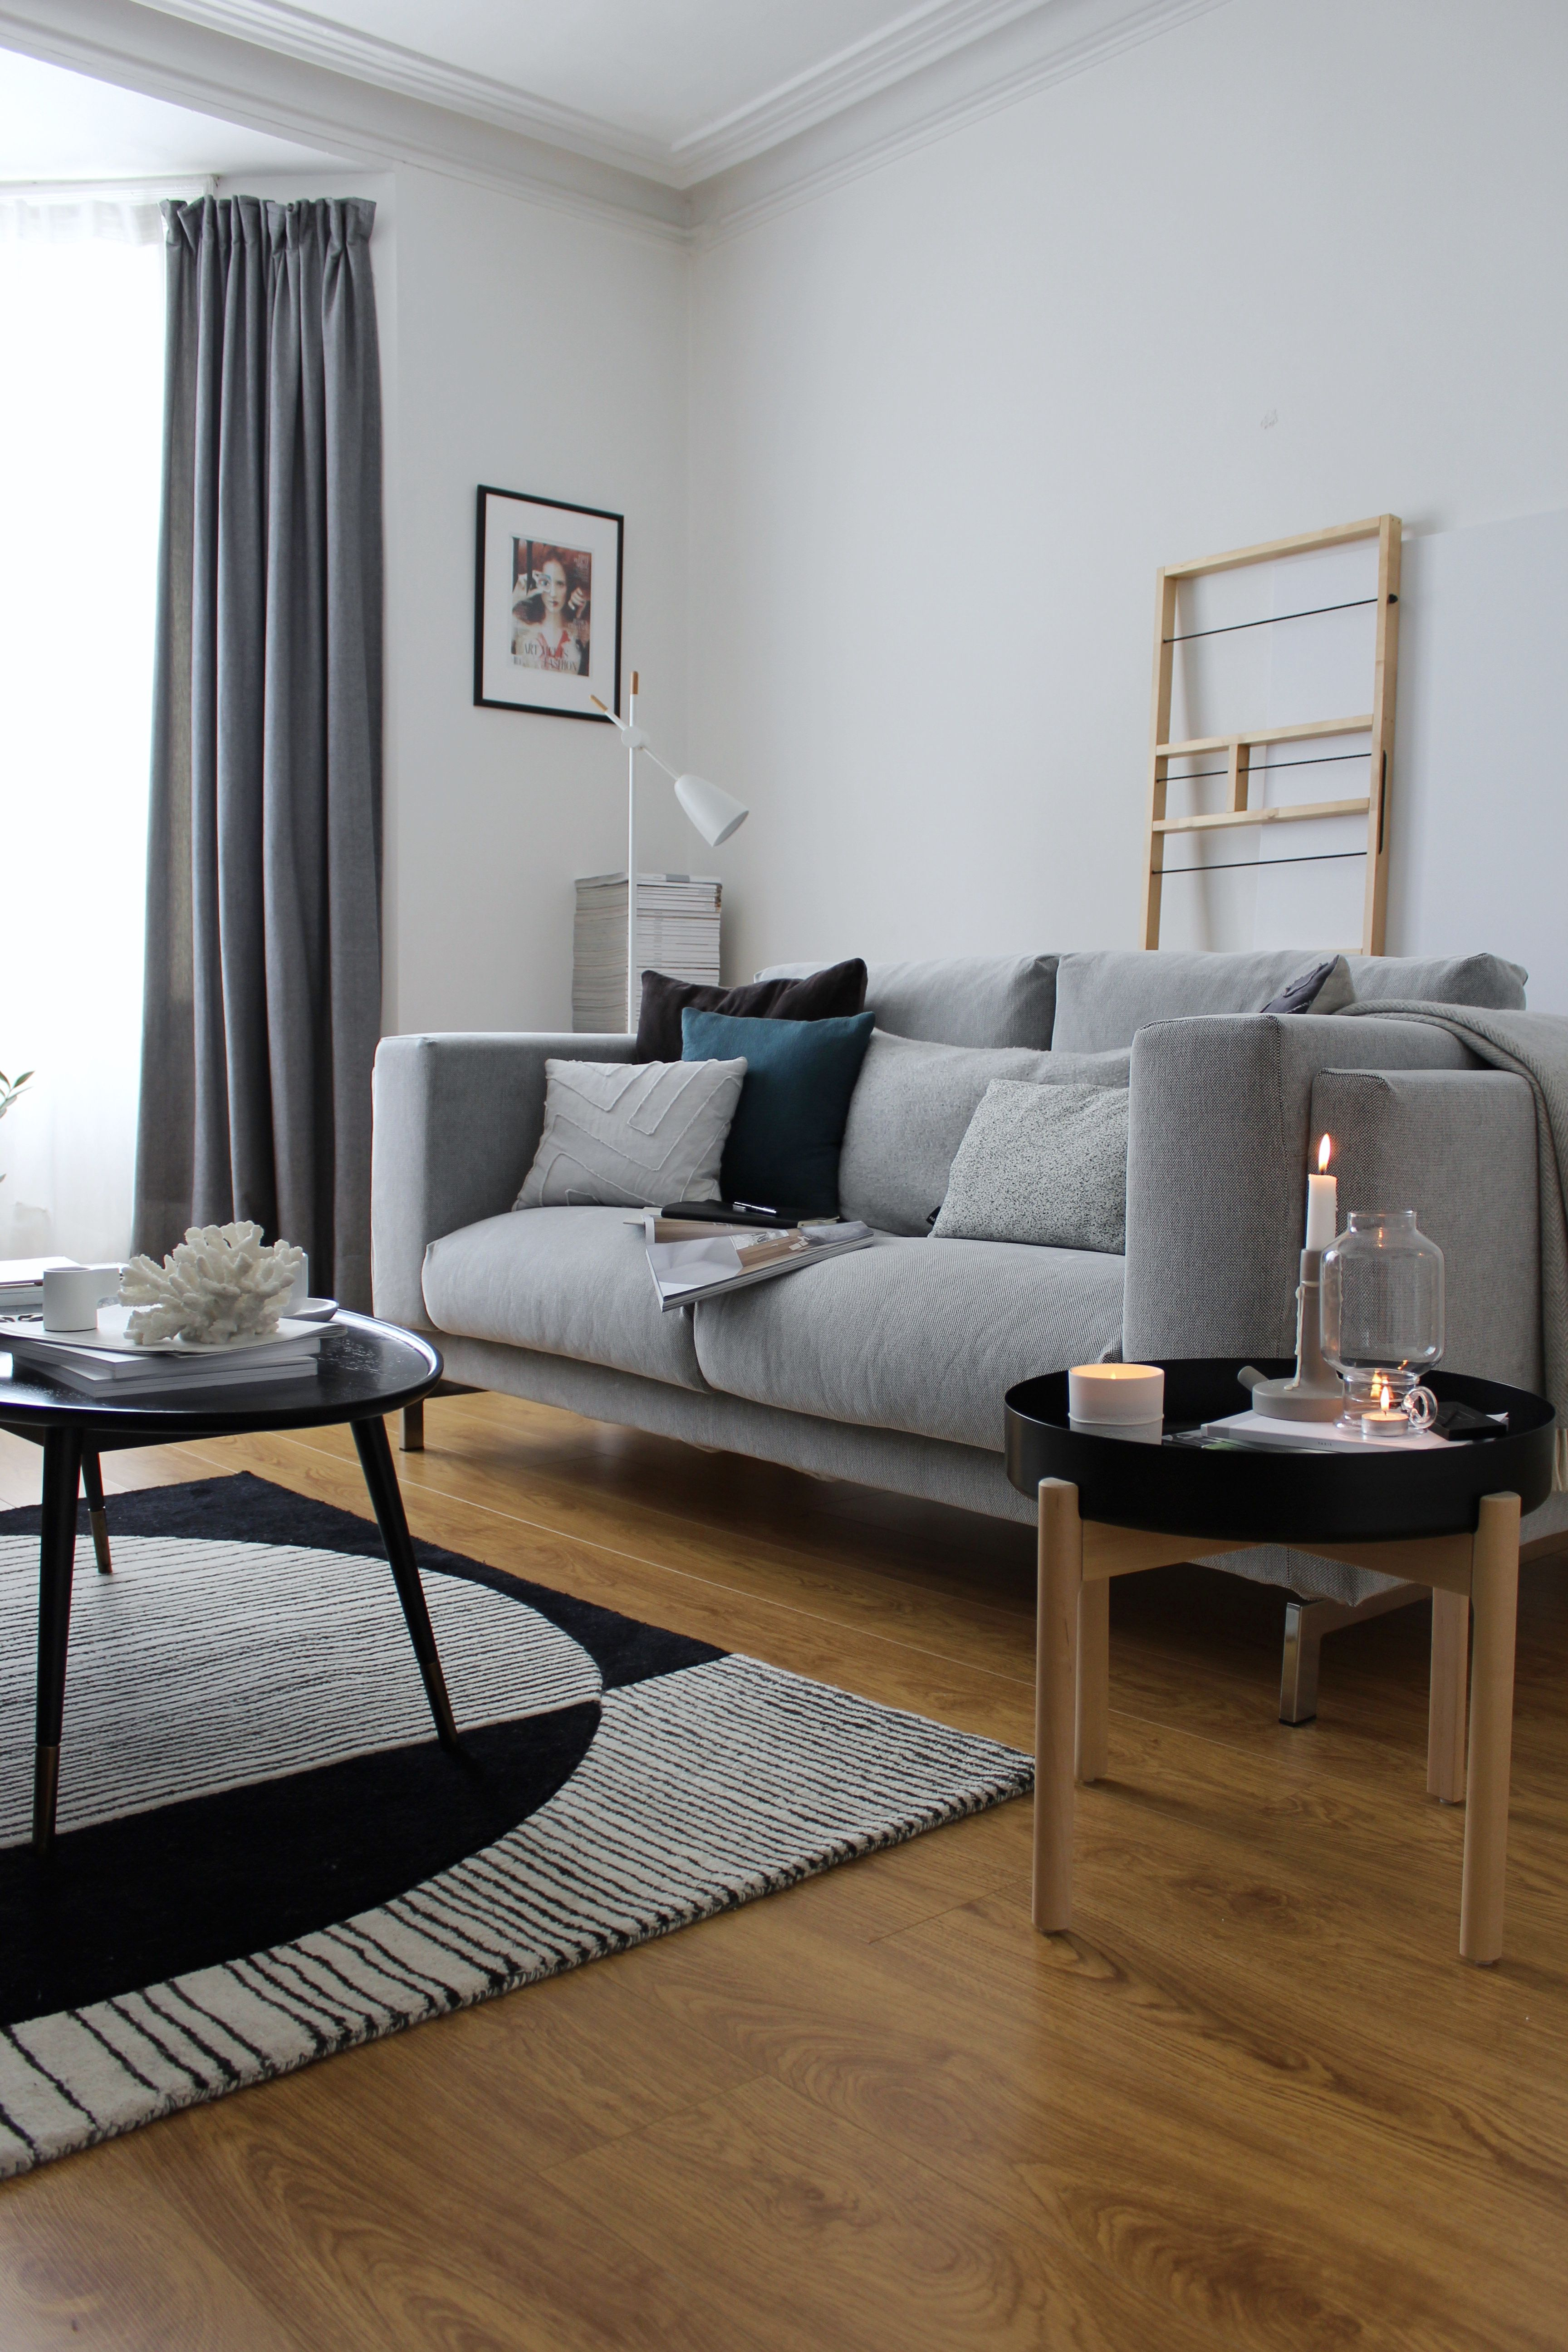 A living room update featuring IKEA s Nockeby Sofa & YPPERLIG